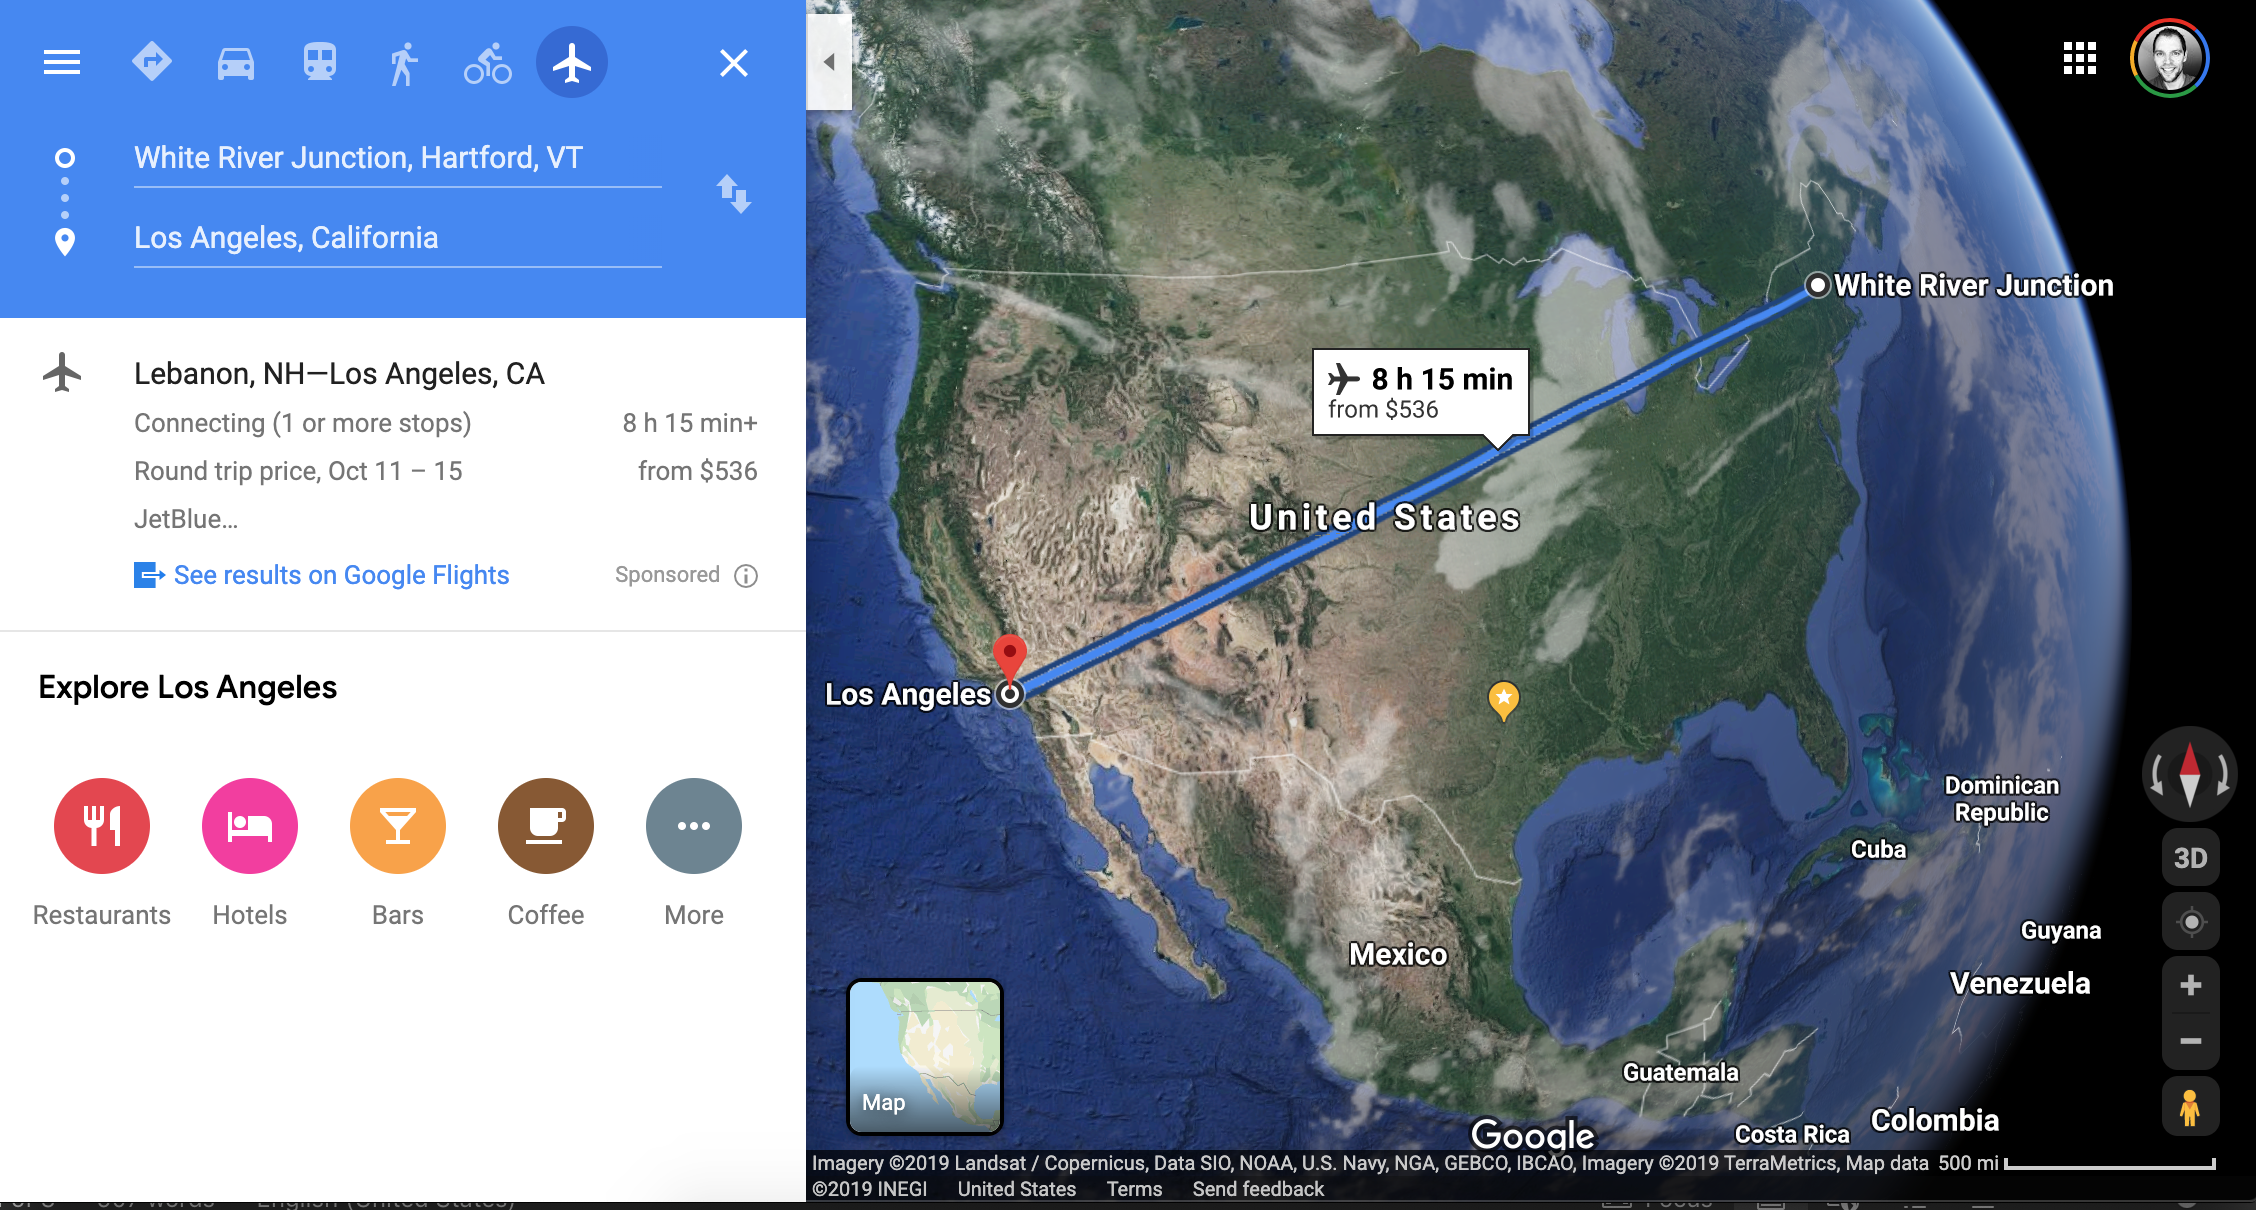 Google Maps result for flying from White River Junction, VT, to Los Angeles, CA